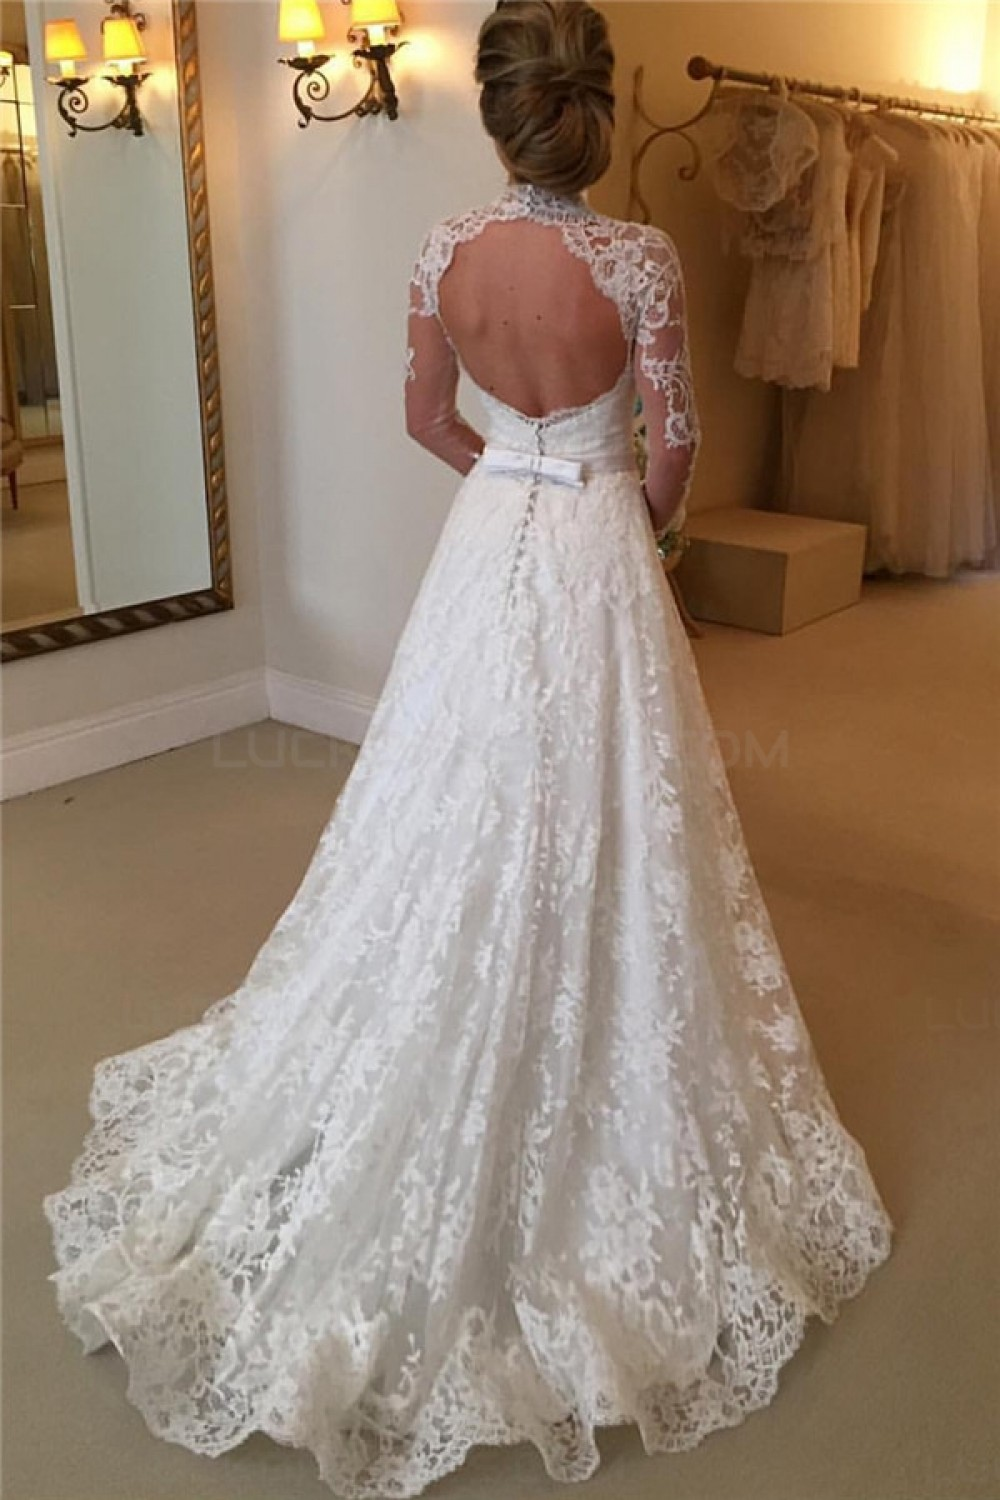 83803352cf1 High Neck Long Sleeves Lace Keyhole Back Wedding Dresses Bridal Gowns  3030306